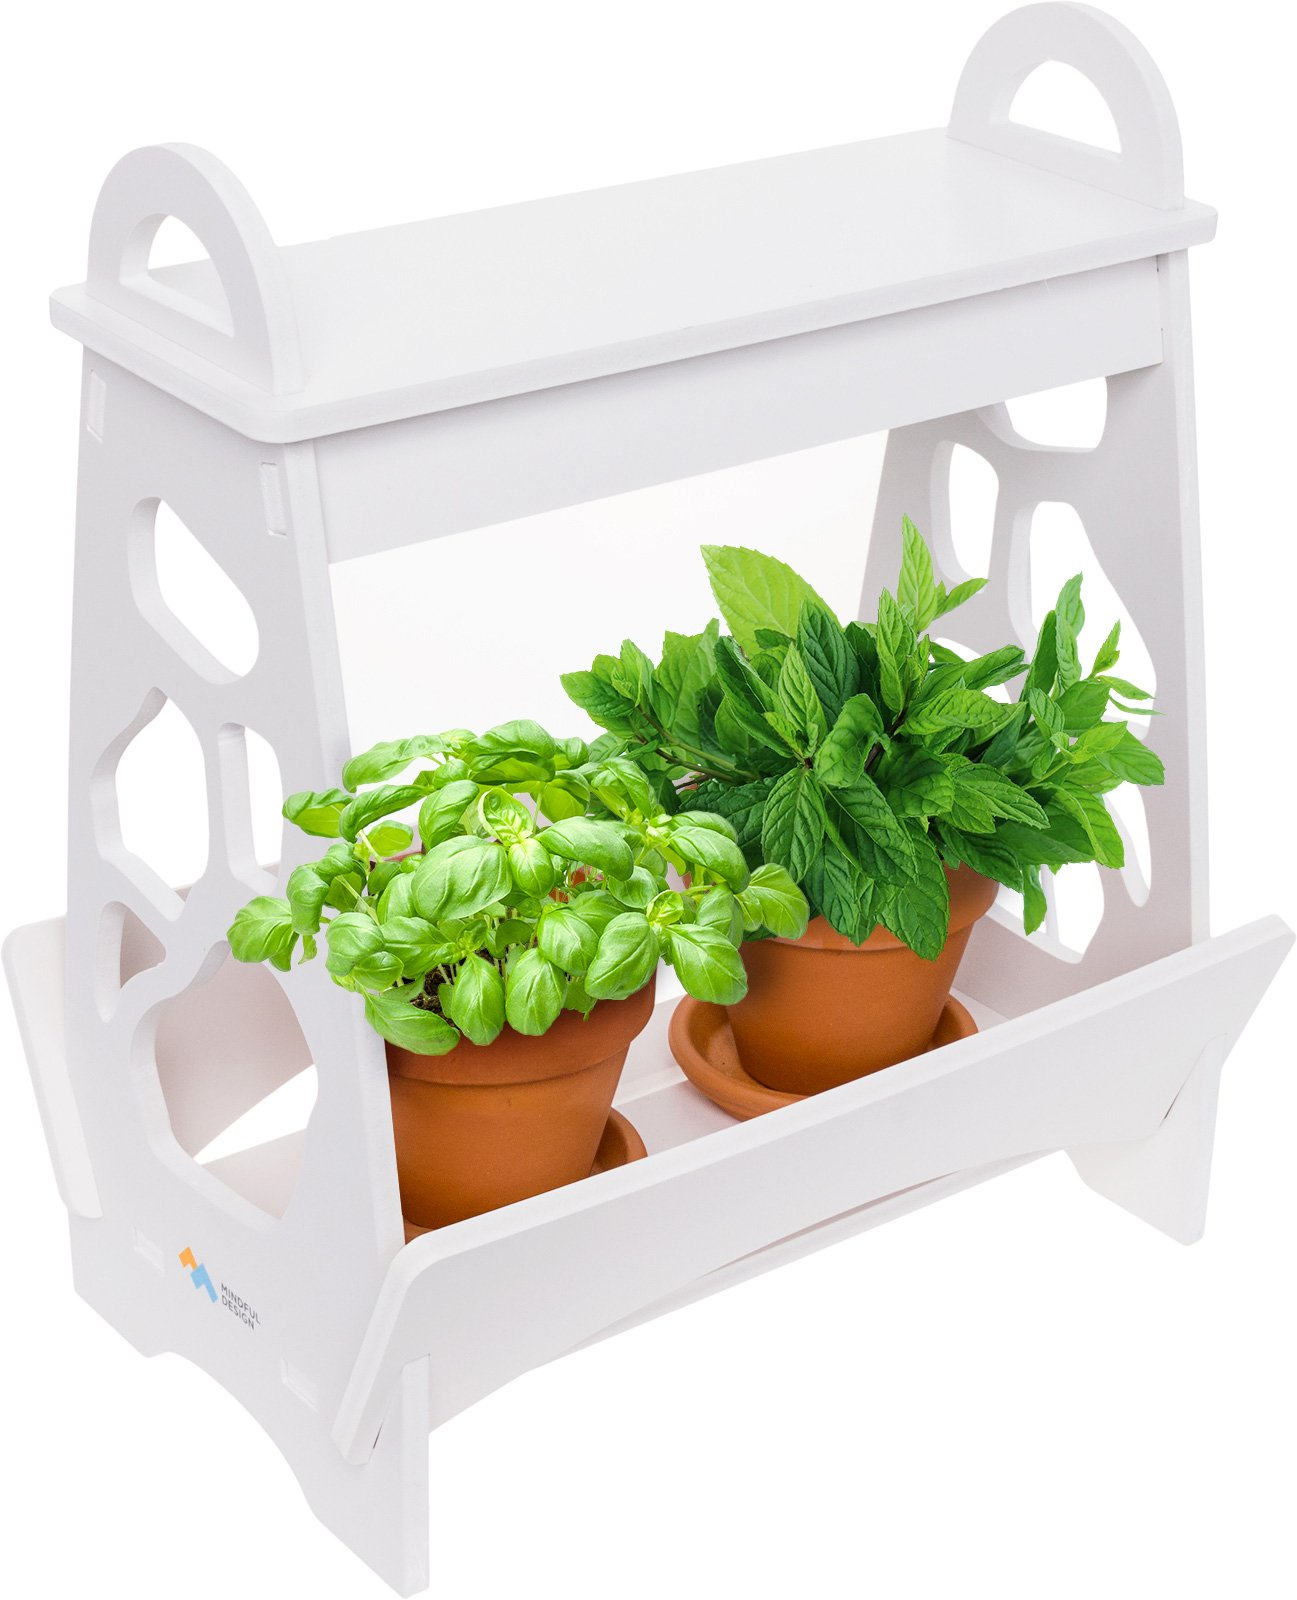 Mindful Design LED Indoor Herb Garden - At Home Mini Planter Kit for Herbs, Succulents, and Vegetables by (White)